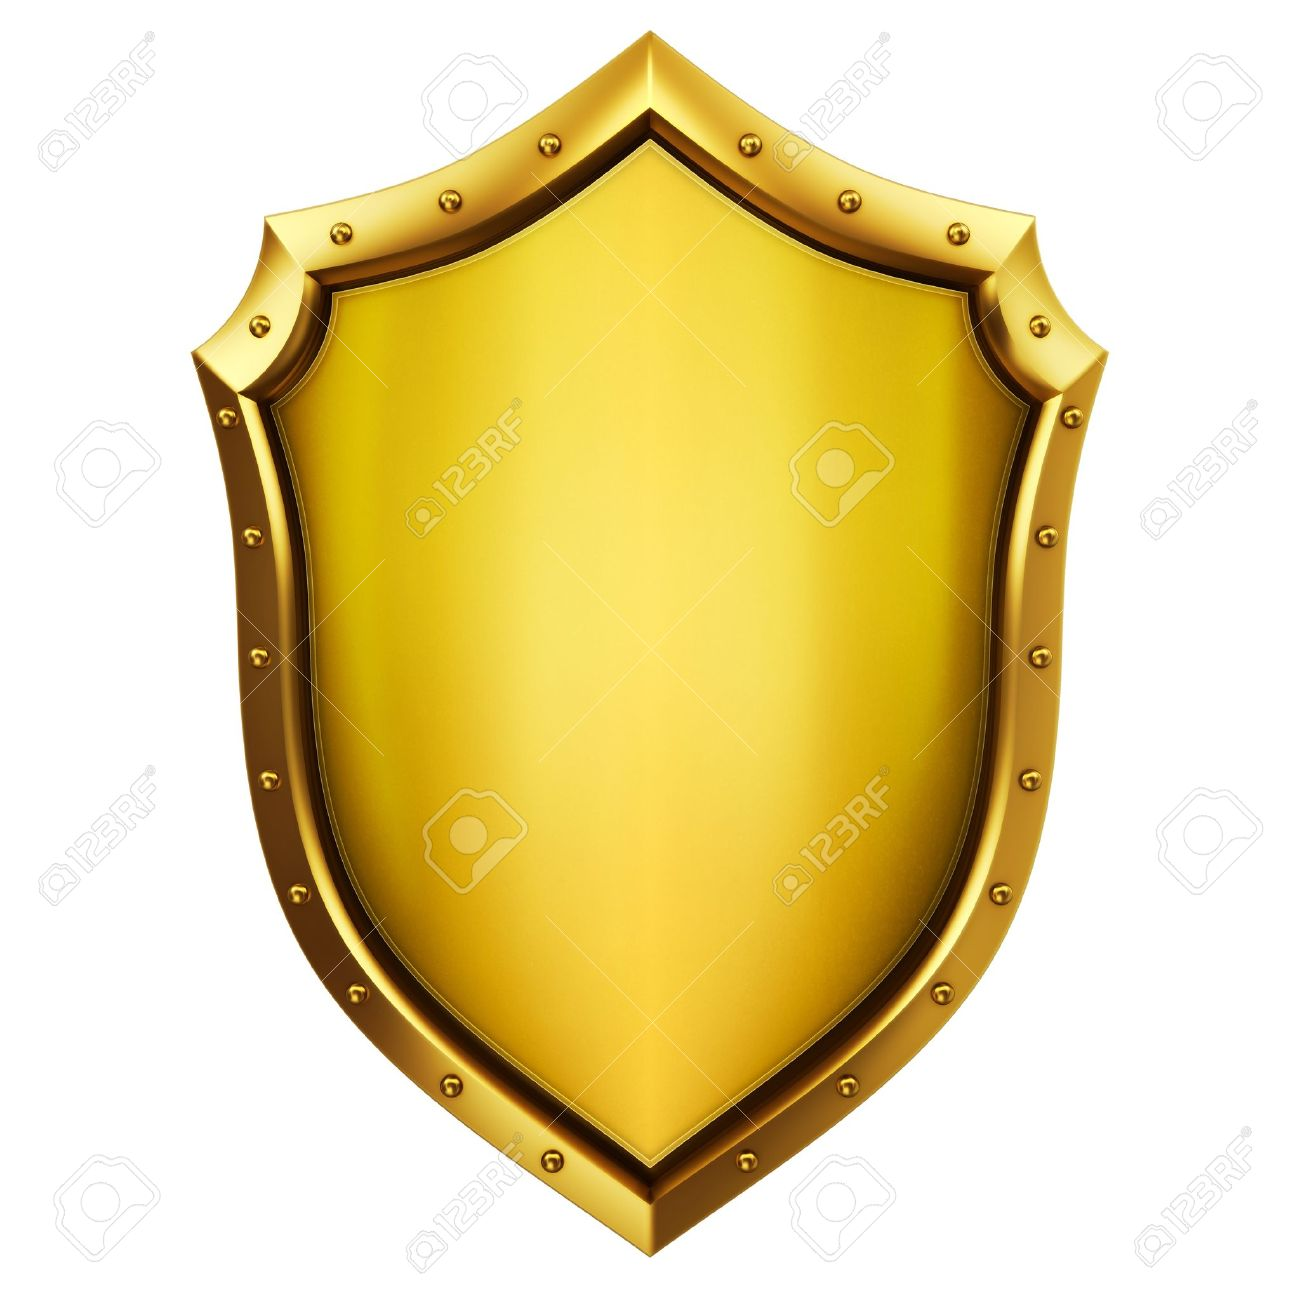 Shield Stock Photos Images, Royalty Free Shield Images And Pictures